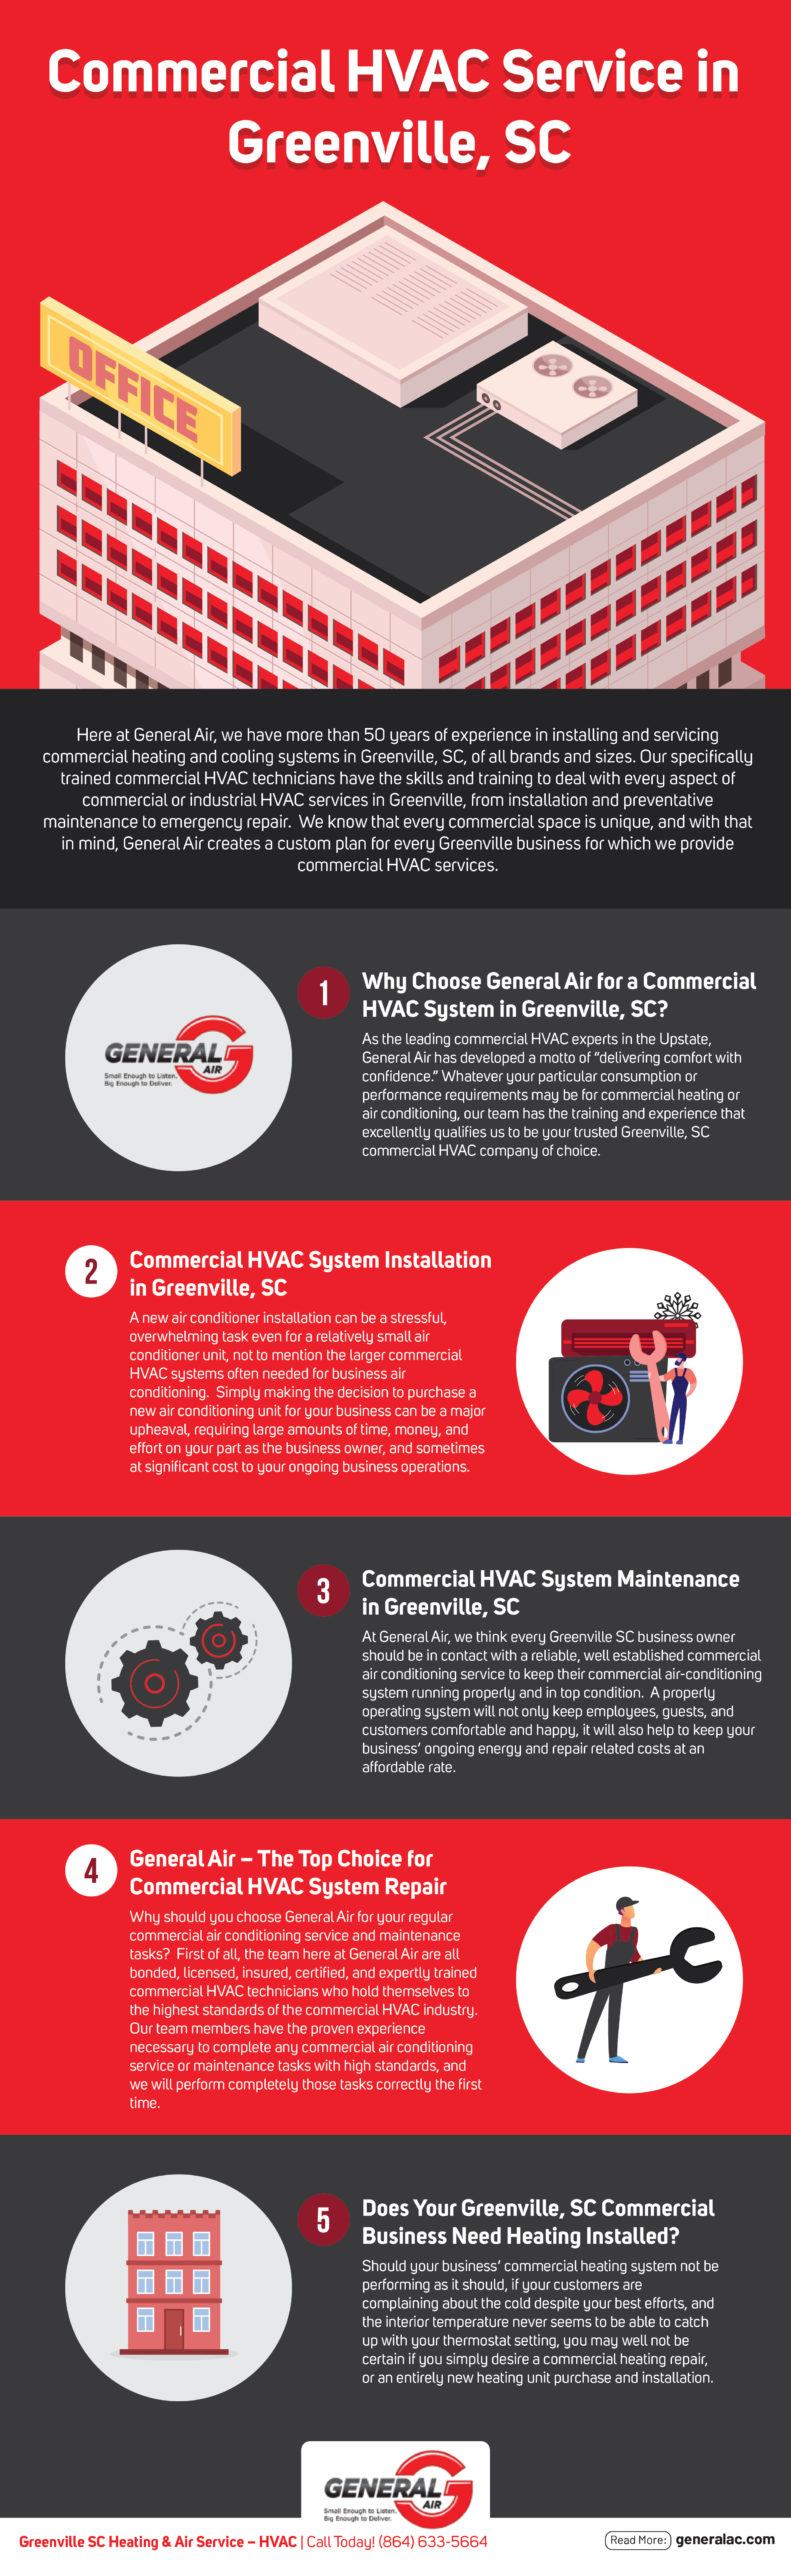 Greenville Commercial HVAC Service Infographic